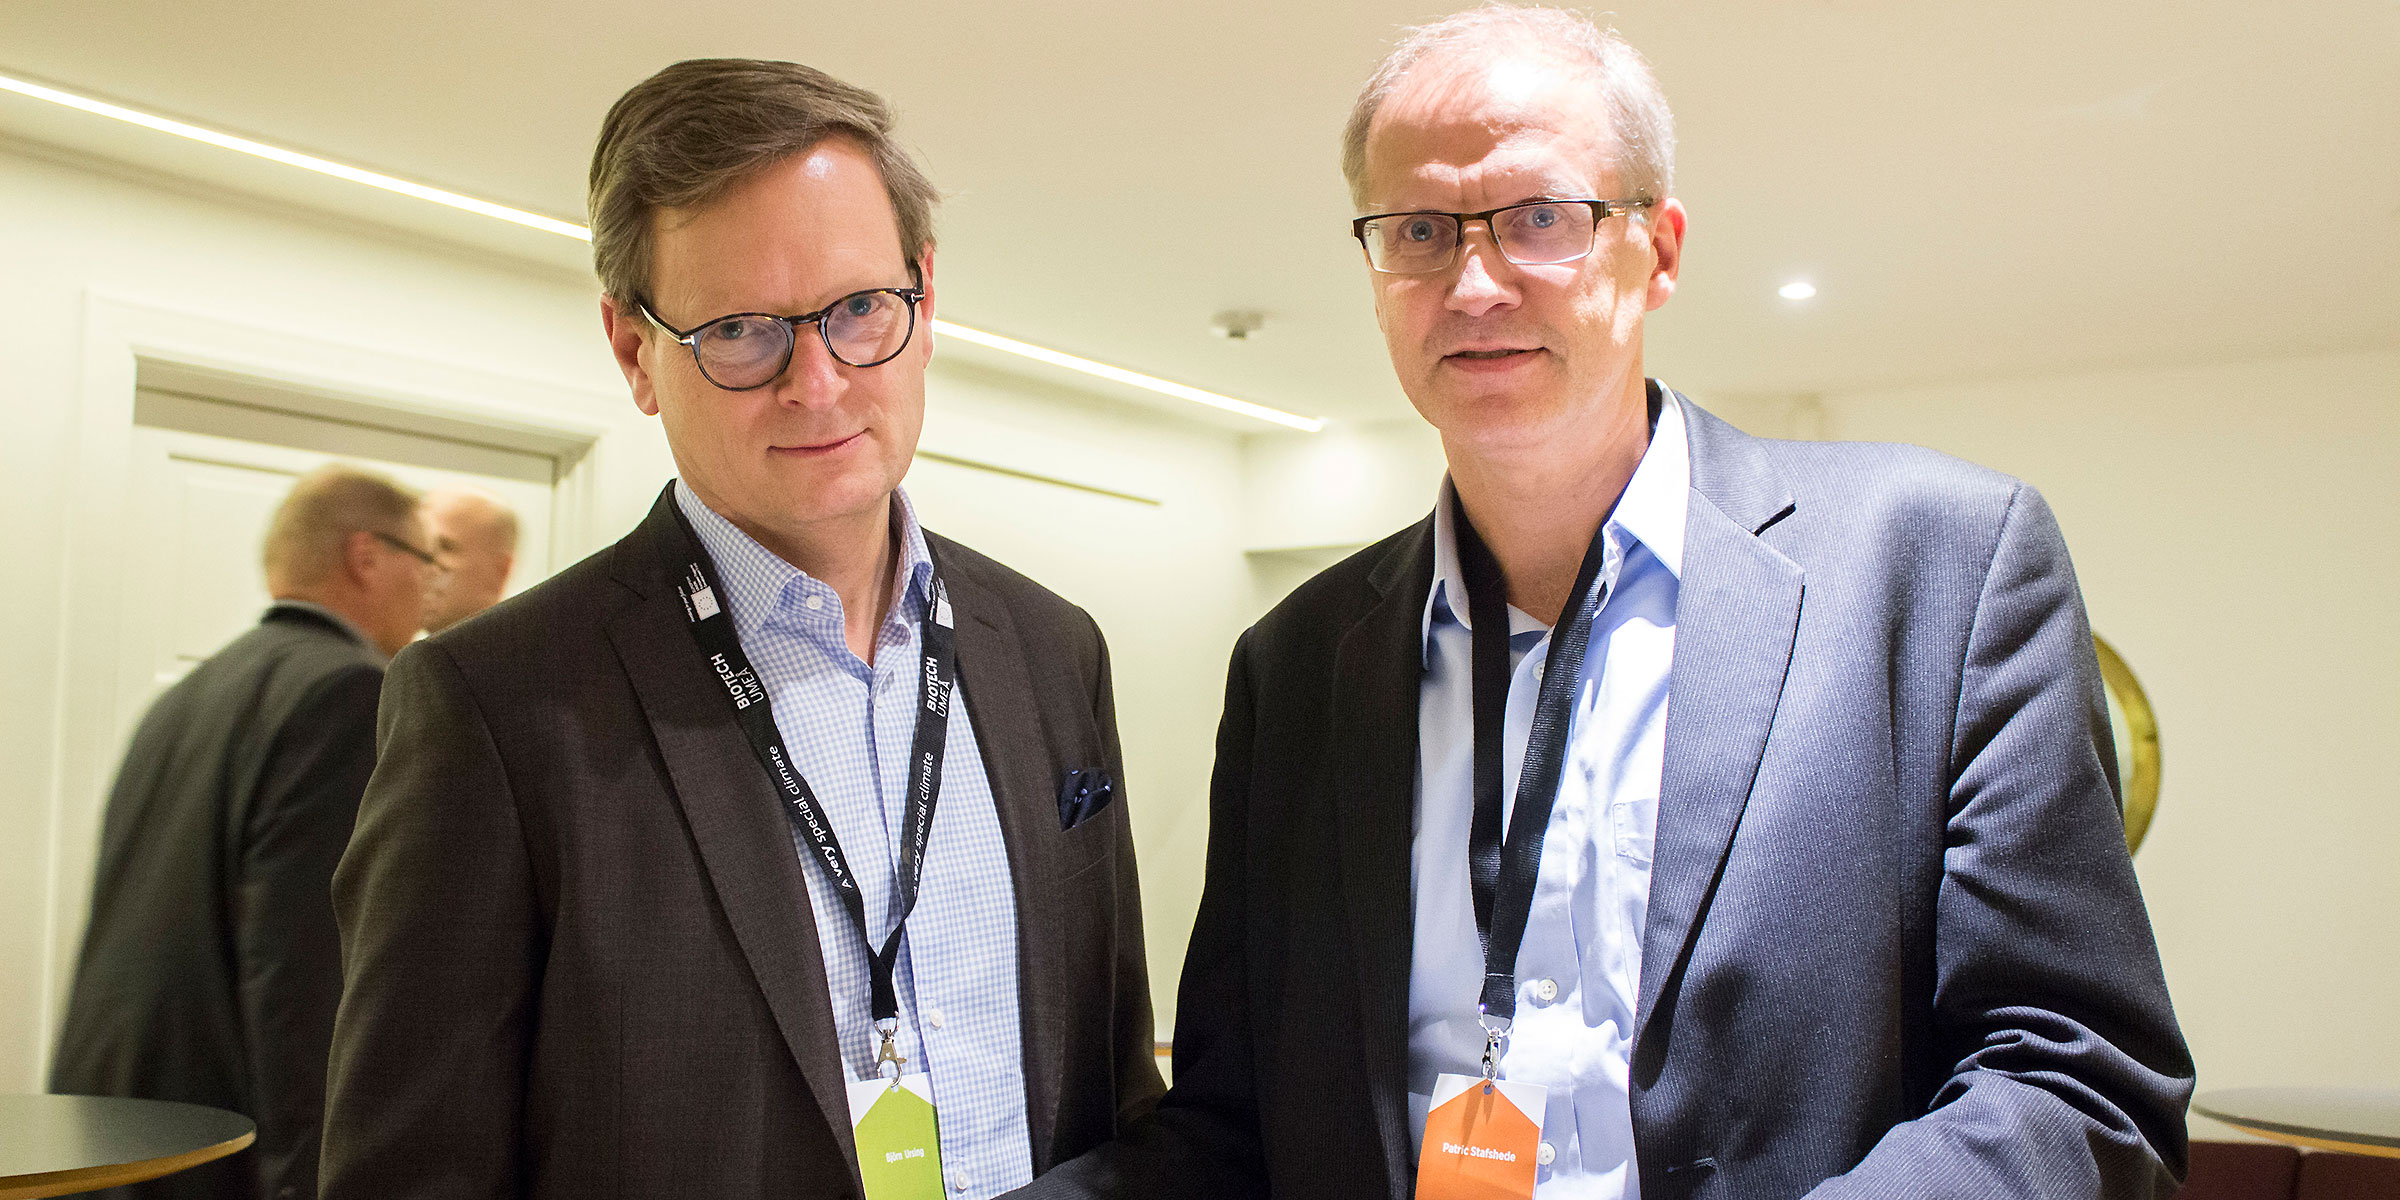 Björn Ursing, Sweden Bio, and Patric Stafshede, LunaLEC, agreed that it is both fun and important to remain updated on new companies entering the market.